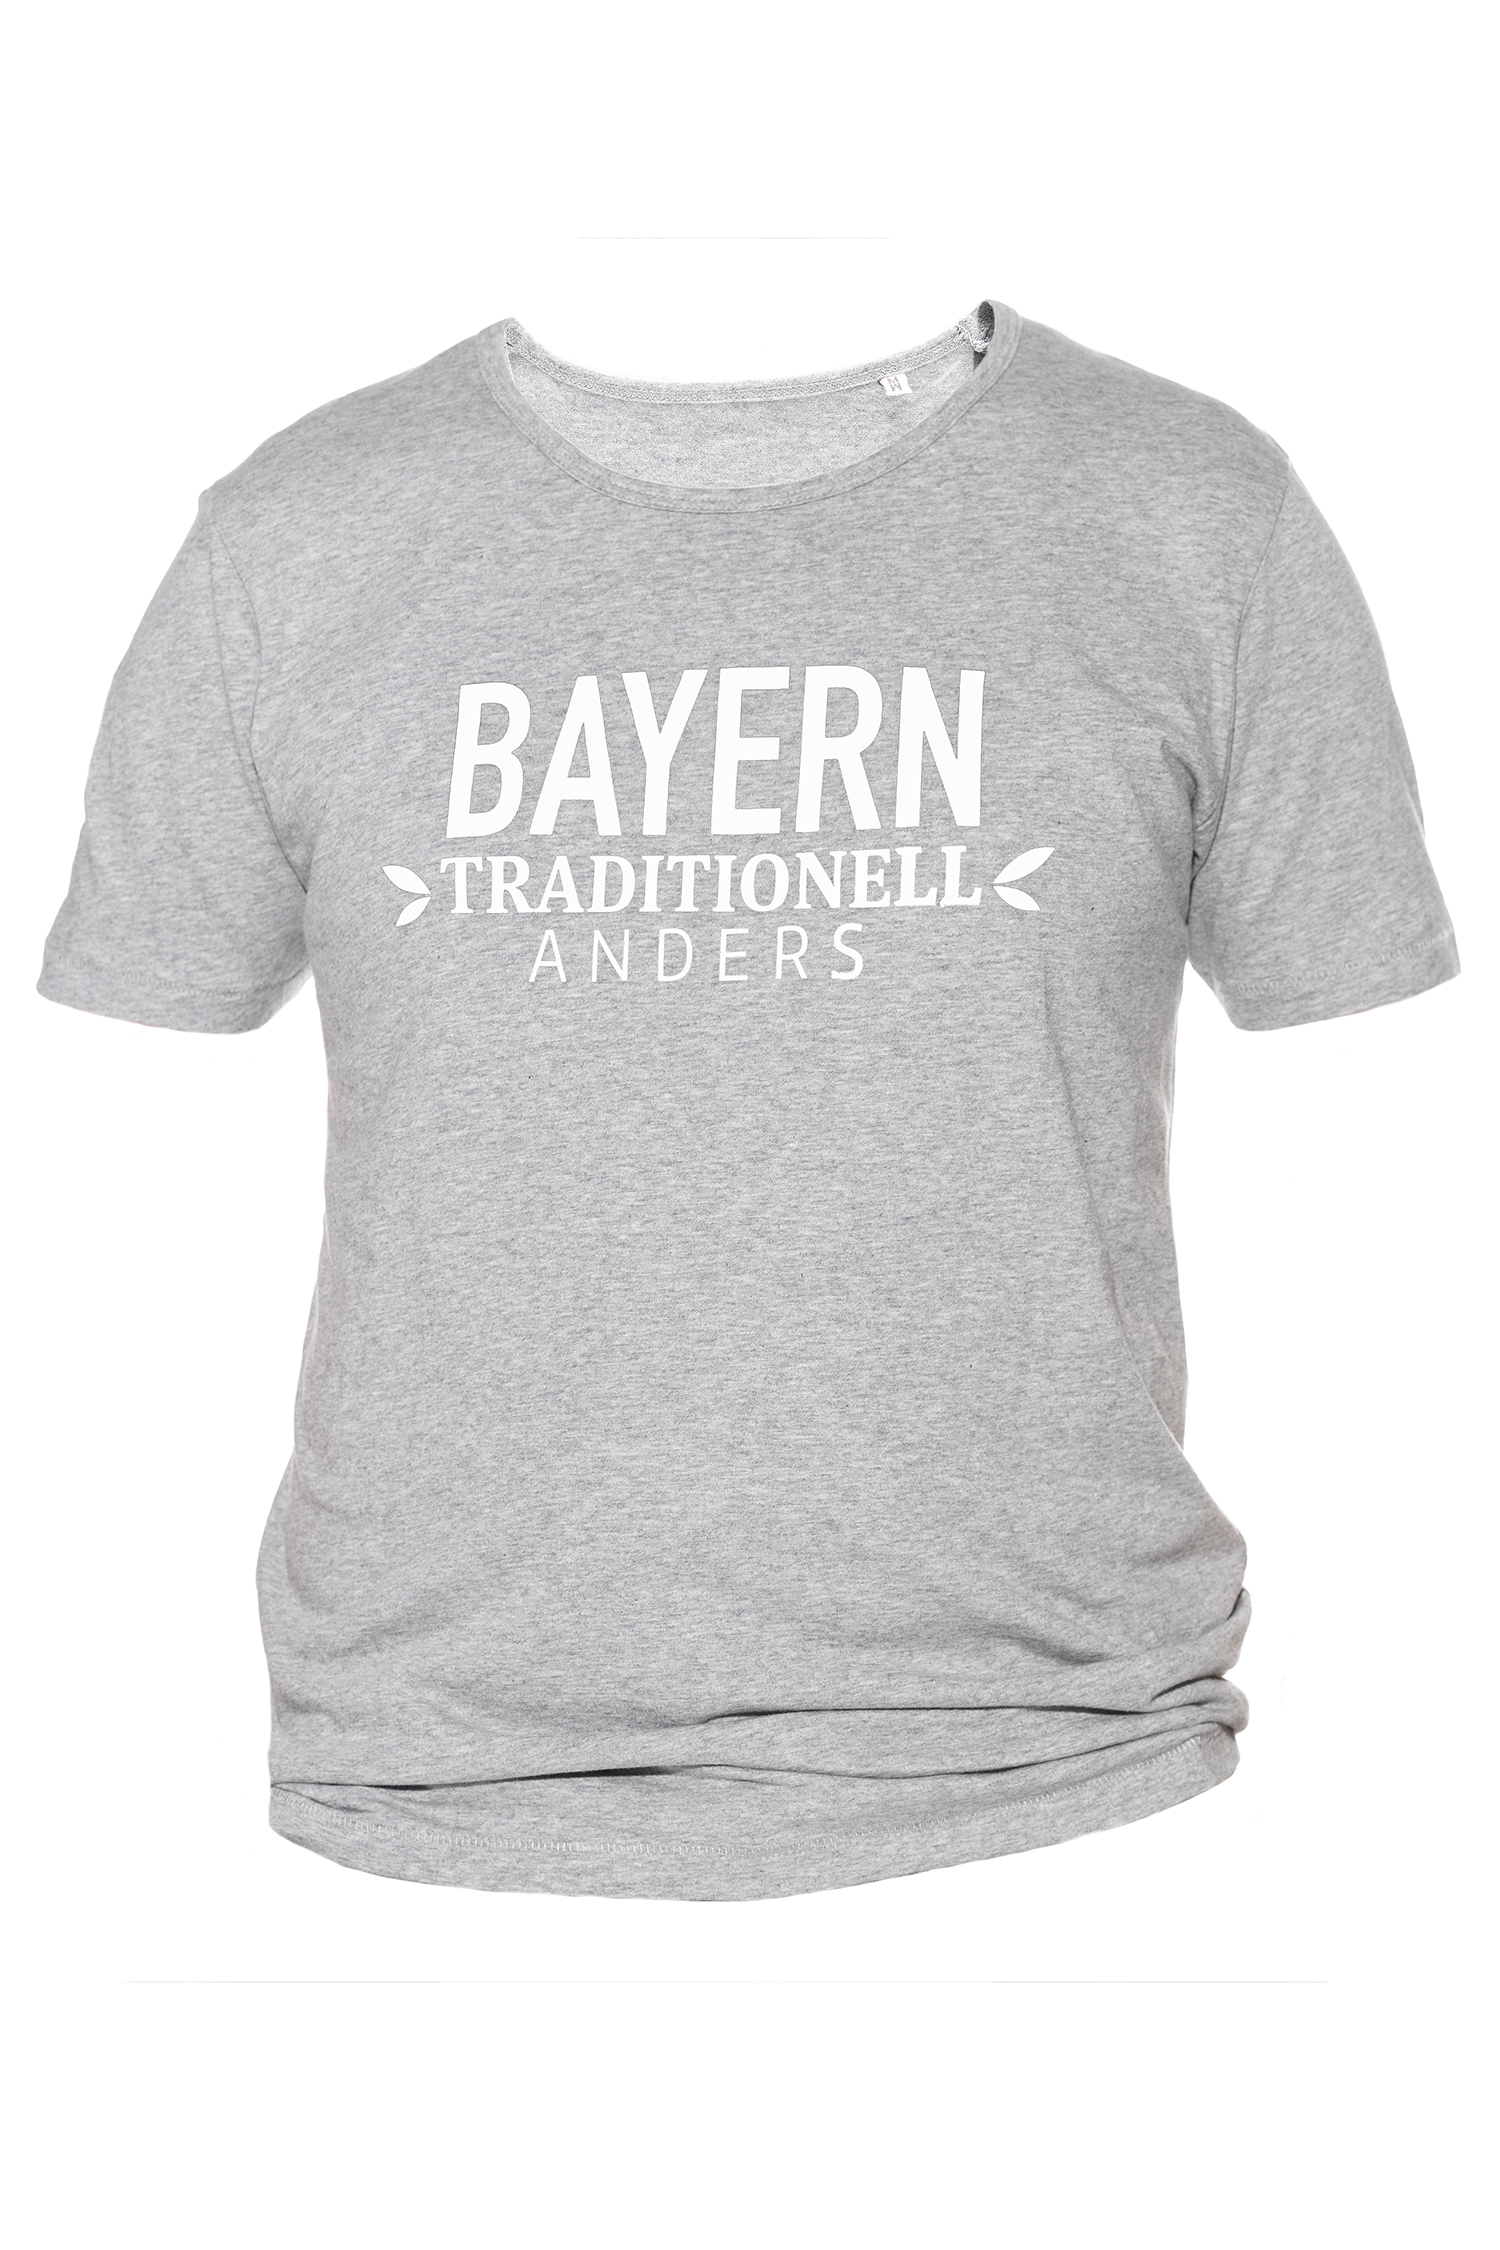 T-Shirt Bayern traditionell anders M | grau / weiß